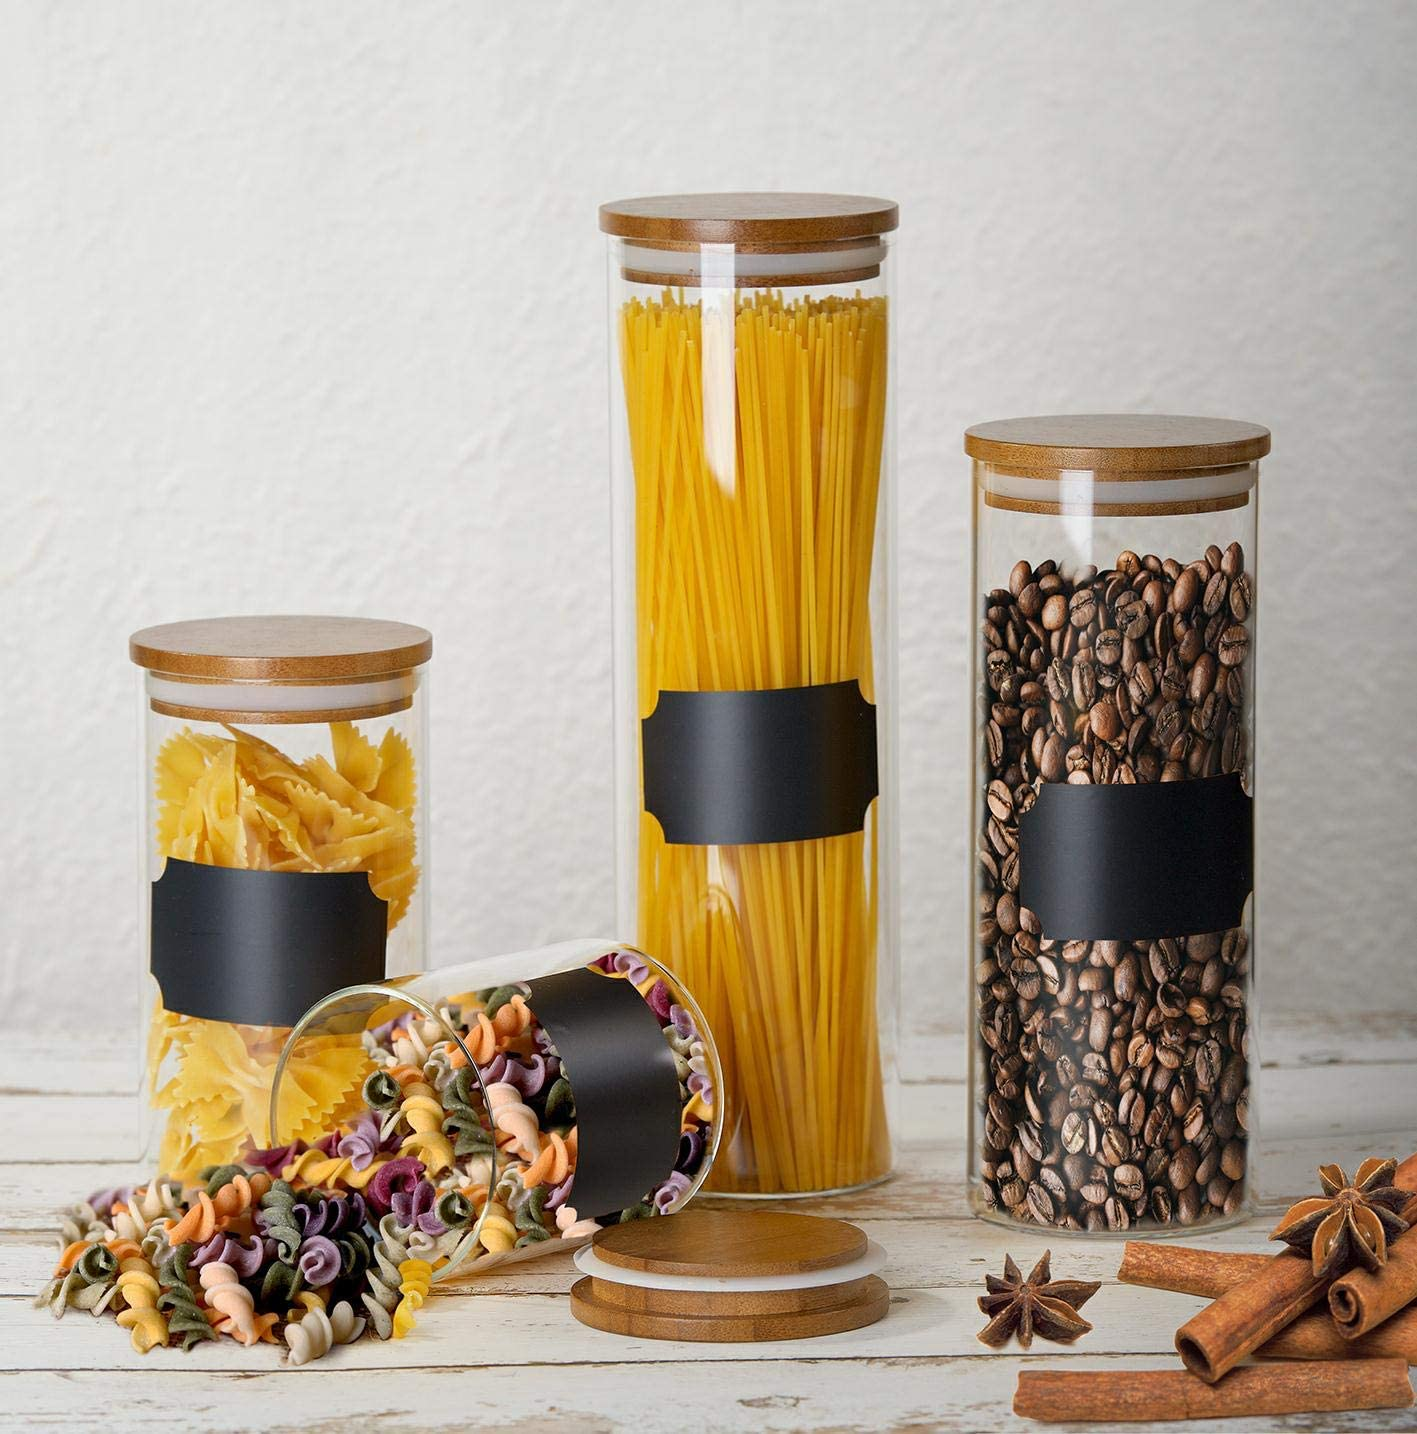 Bely Glass Food Storage Containers with Lids - Set of 4 Kitchen Canisters - Candy, Cookie, Rice and Spice Jars,Sugar or Flour Container,Big and Small Airtight Food Jar for Pantry